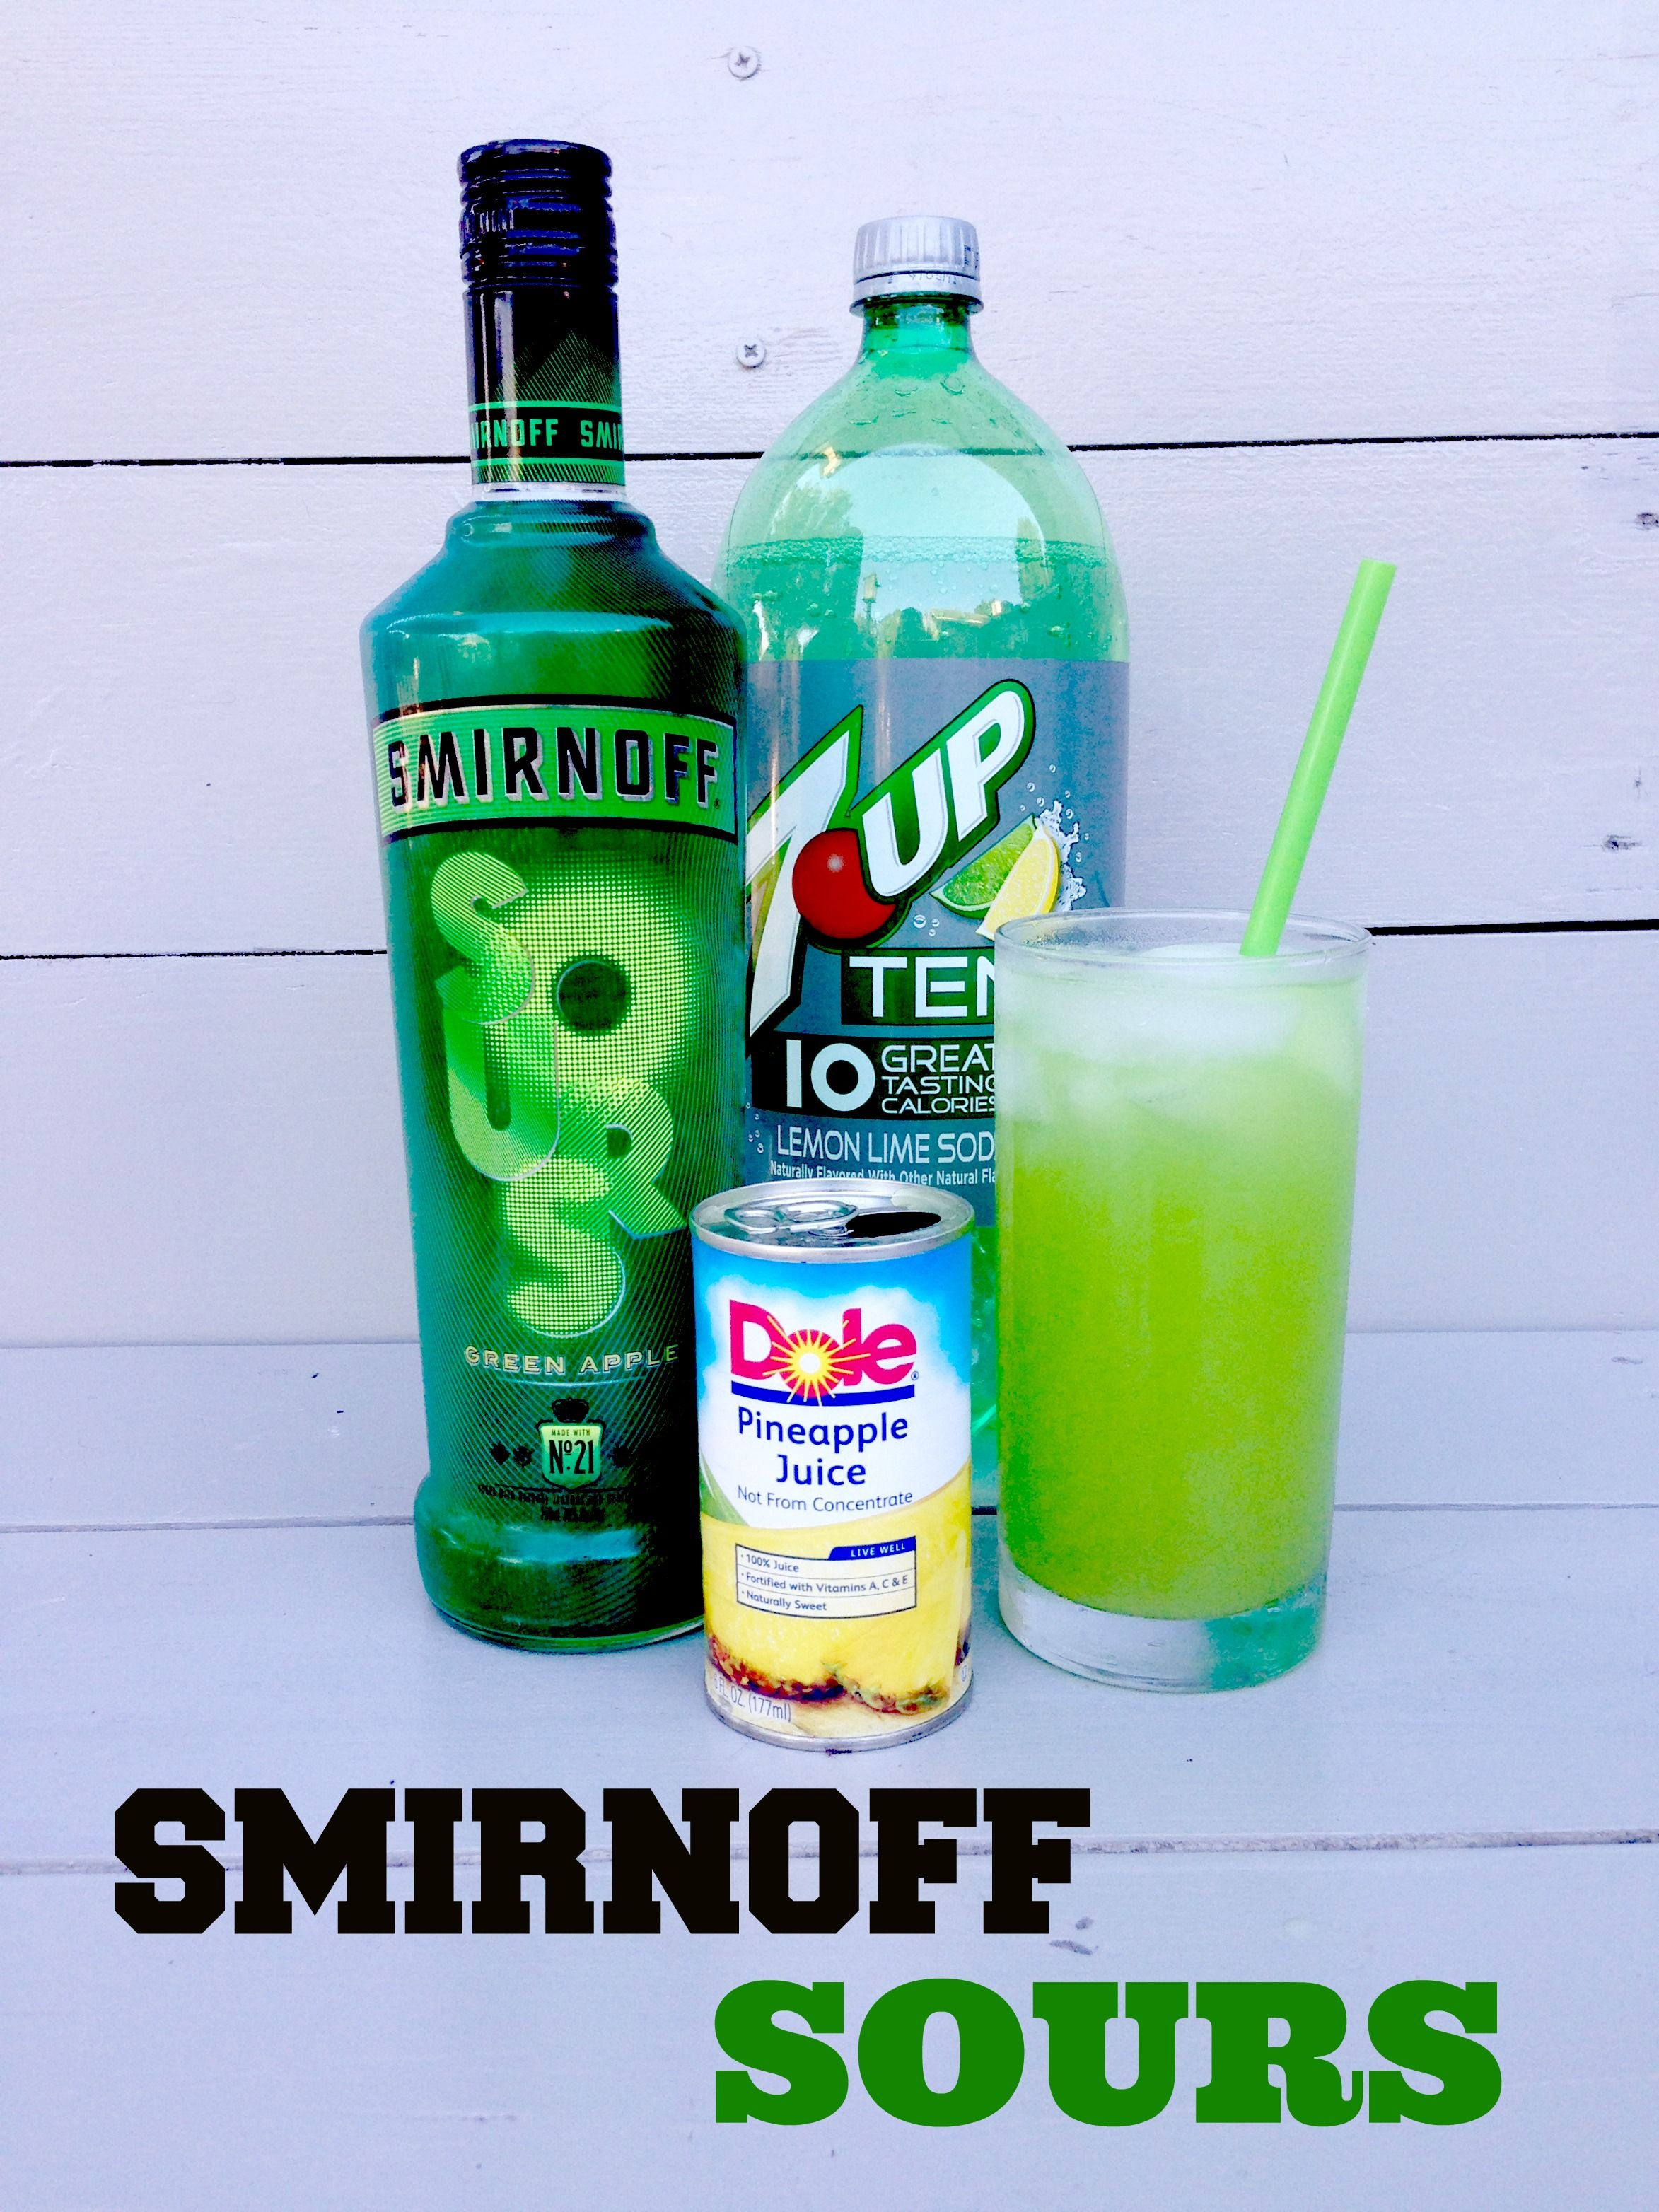 Smirnoff Sours Green Apple Vodka Recipe, Follow for more @hibazzz ...